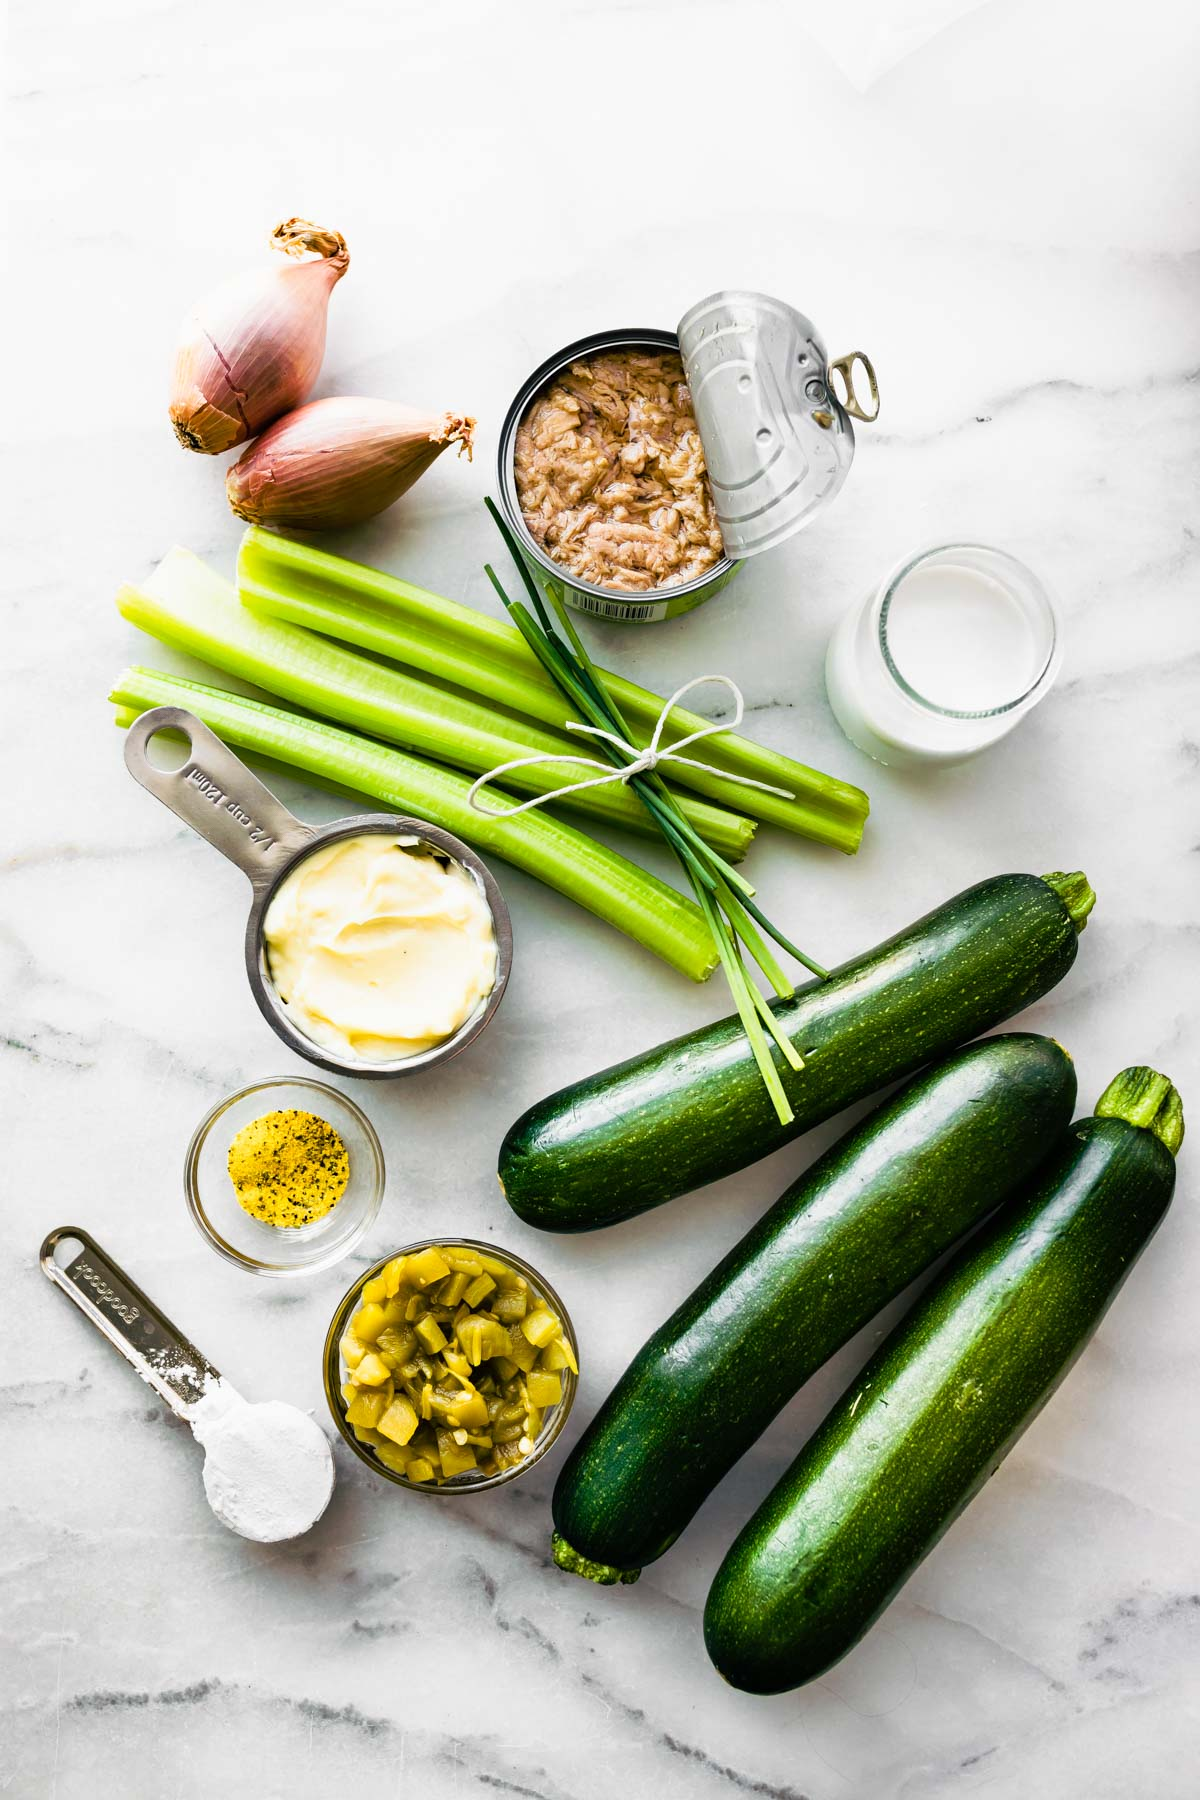 Ingredients to make tuna casserole with zucchini noodles